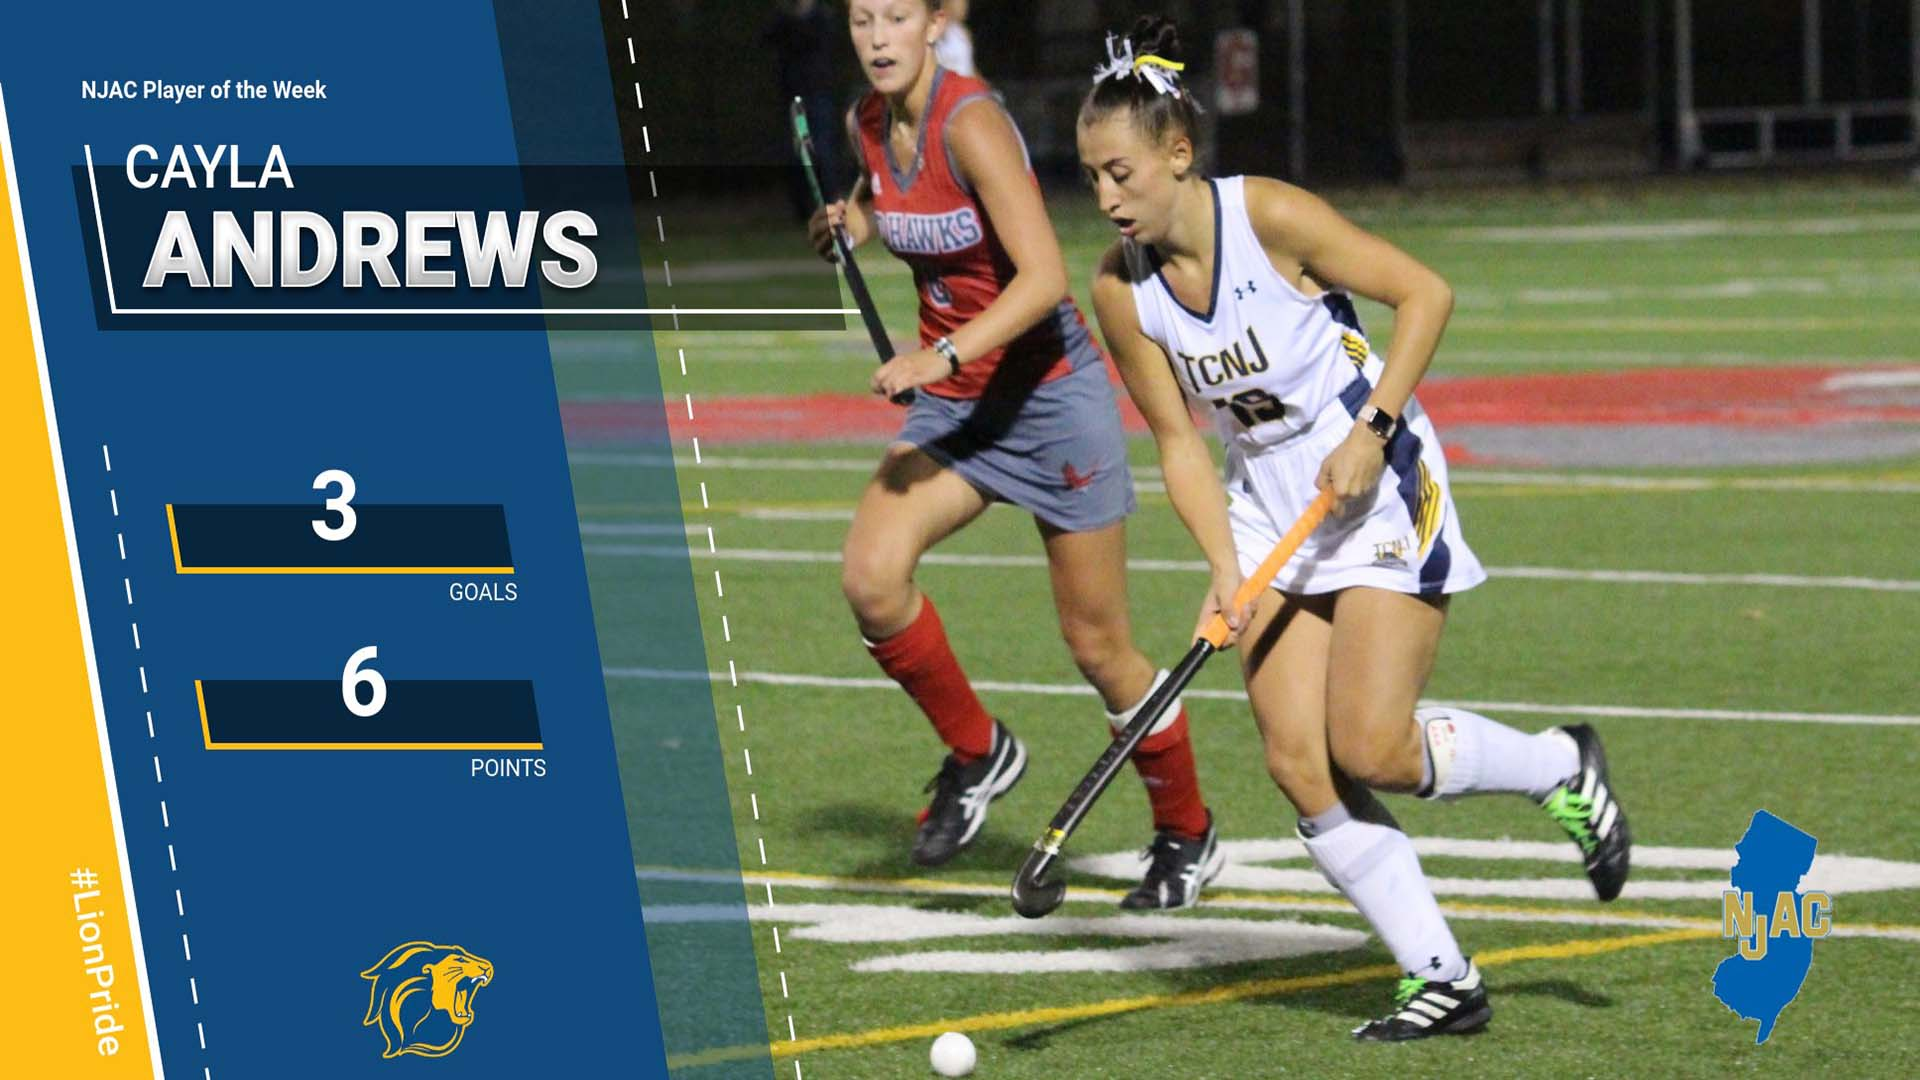 The College of New Jersey Athletics - Official Athletics Website